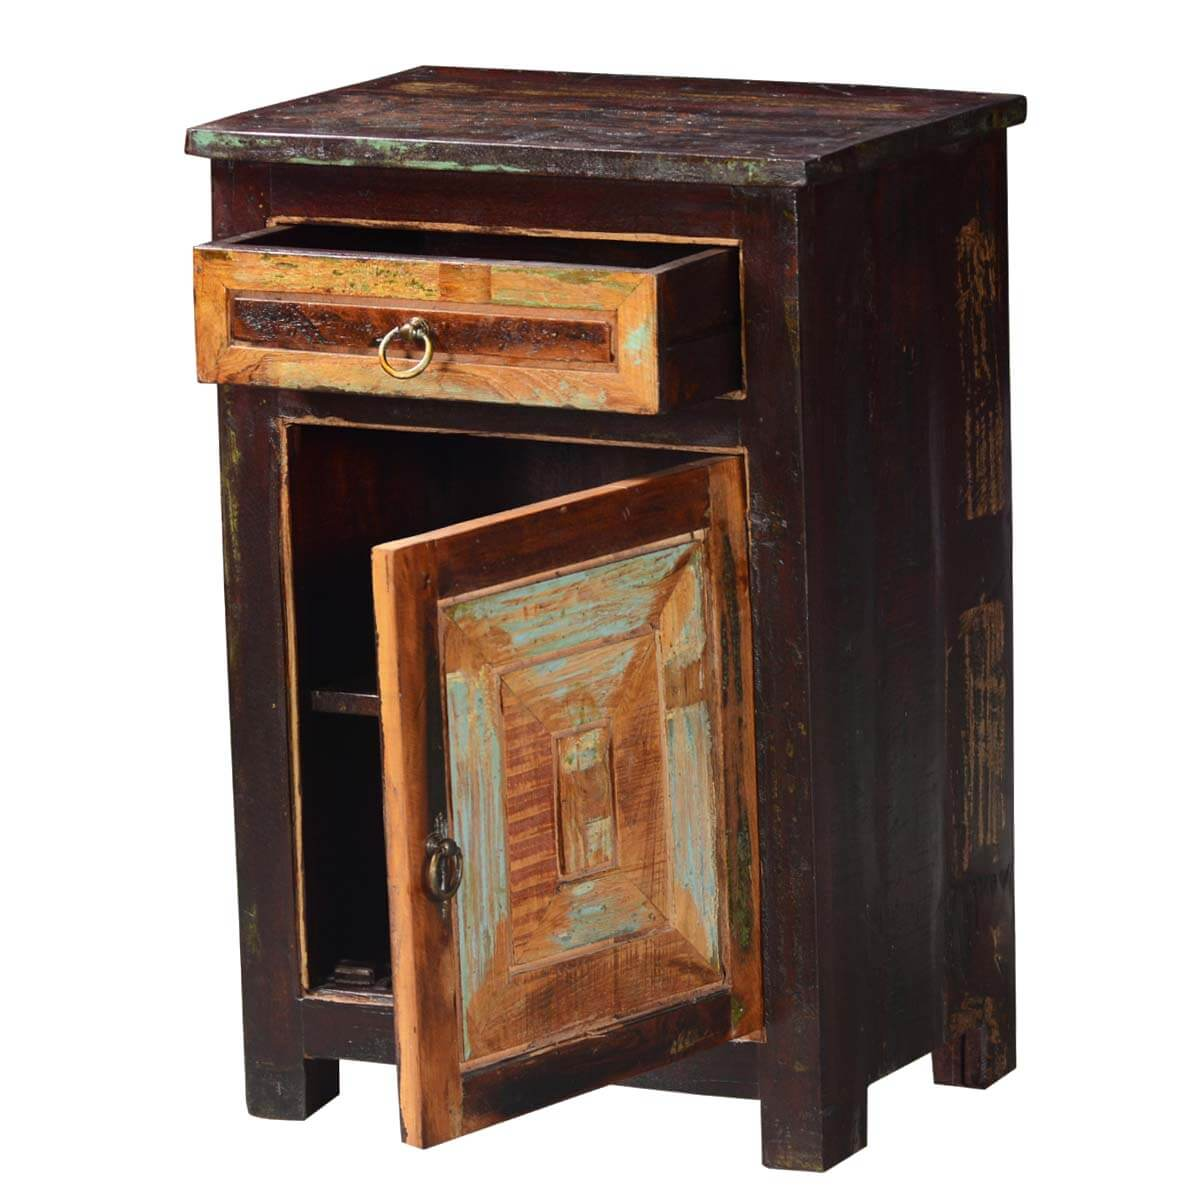 Classic Handcrafted Reclaimed Wood Bedside End Table With